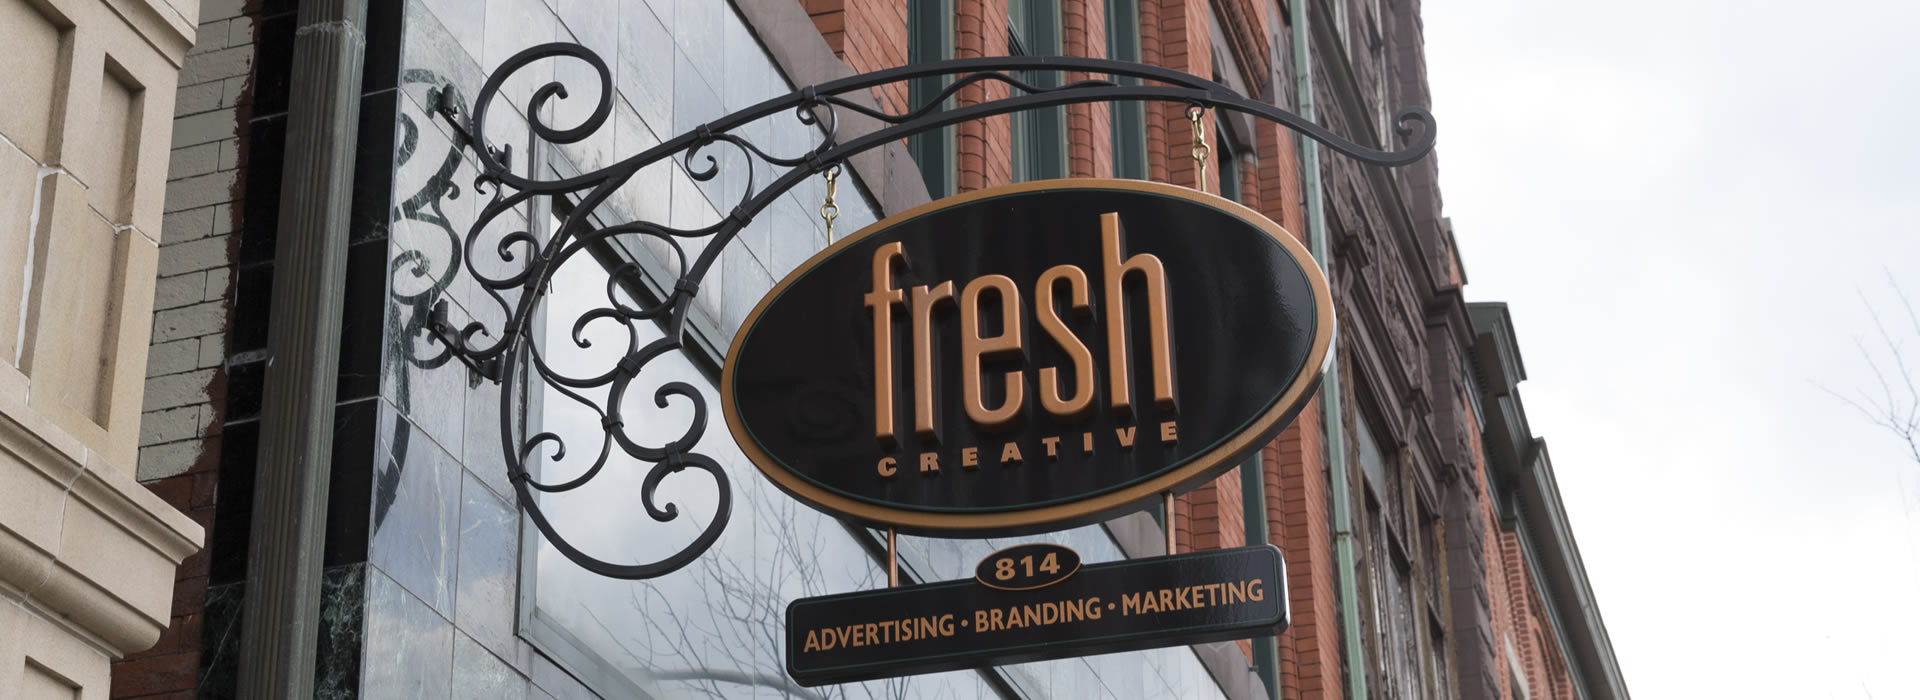 ABOUT FRESH CREATIVE